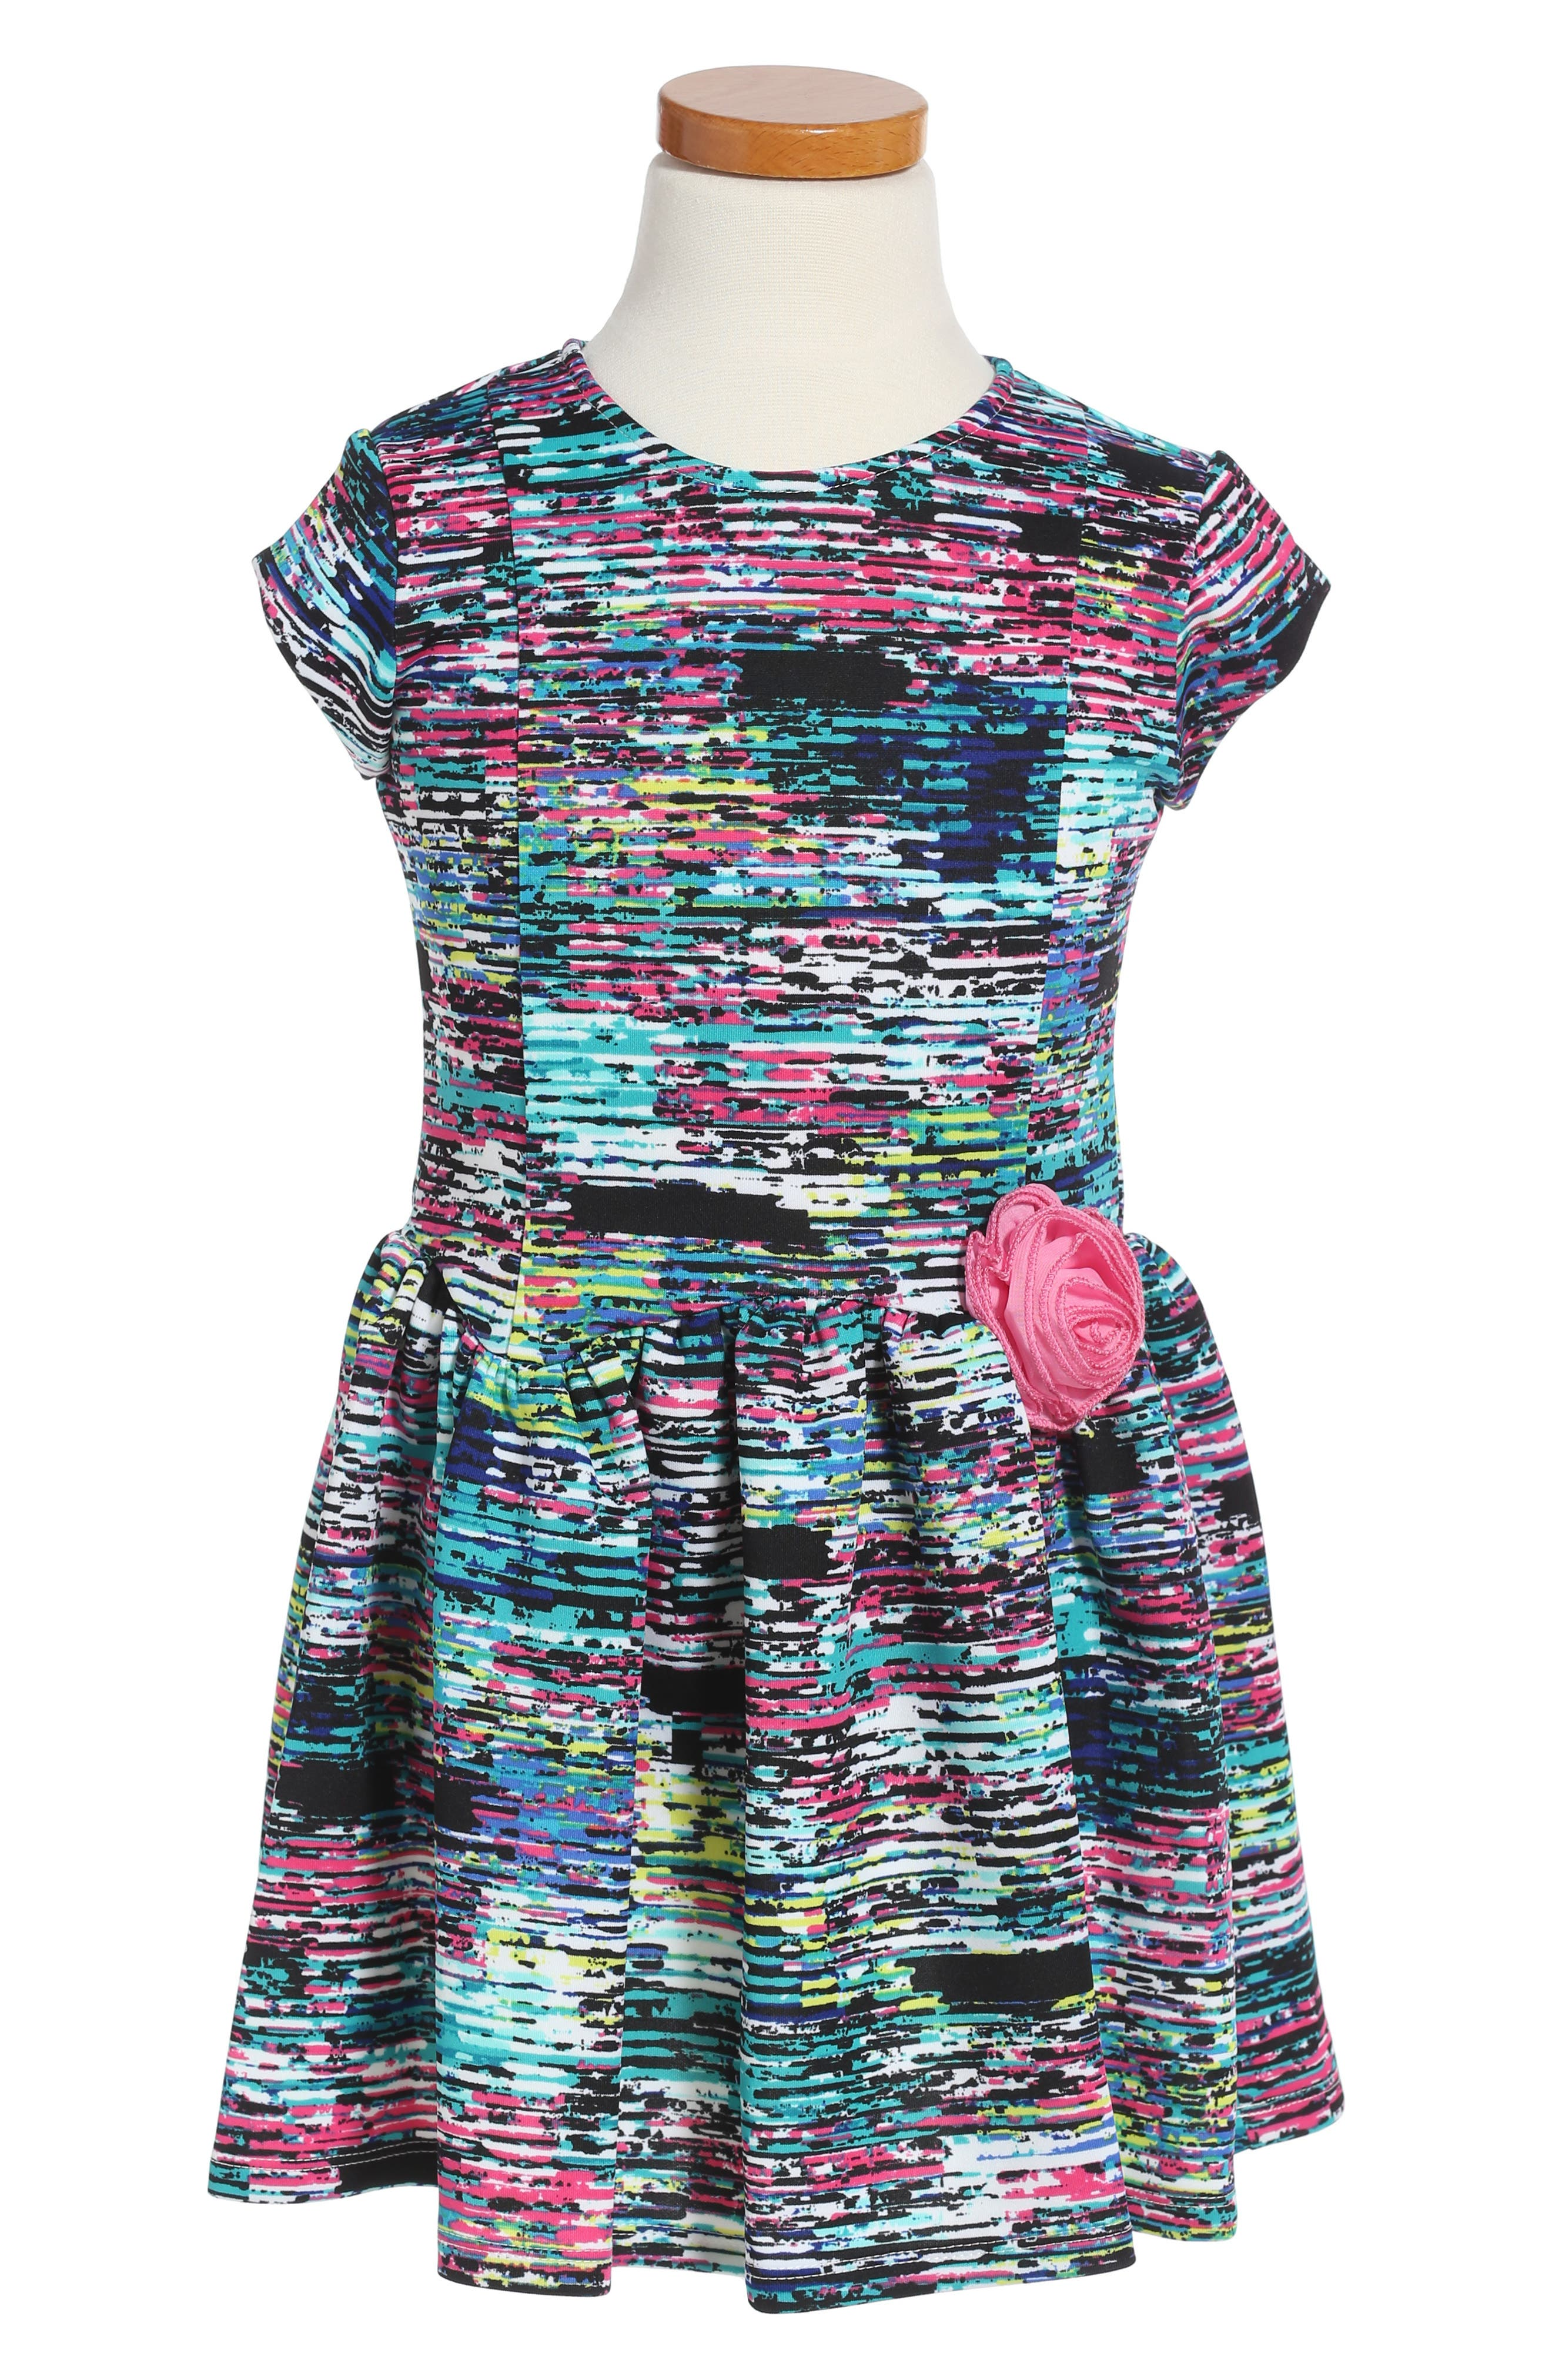 Pippa & Julie Print Scuba Dress (Toddler Girls & Little Girls)